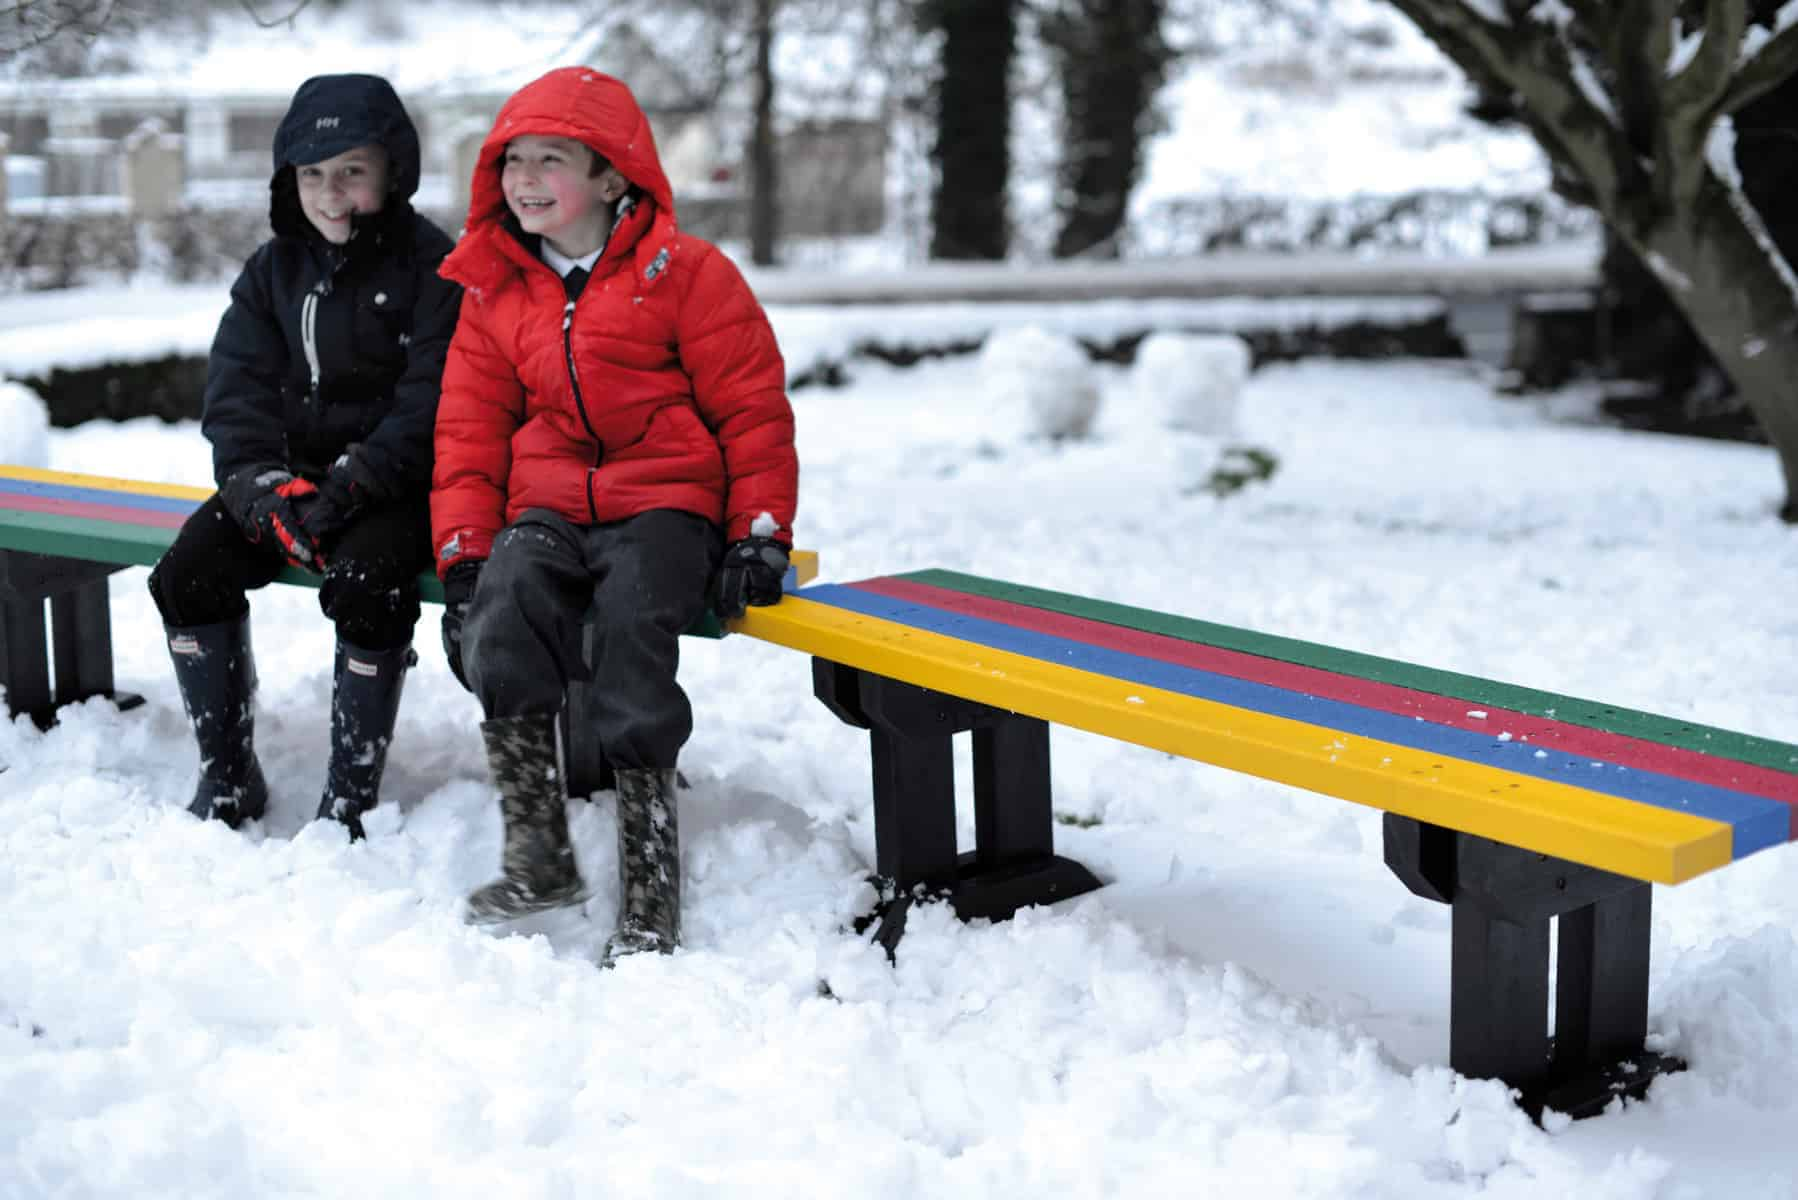 Toucan recycled plastic kids benchrecycled plastic Toucan in snow with kids